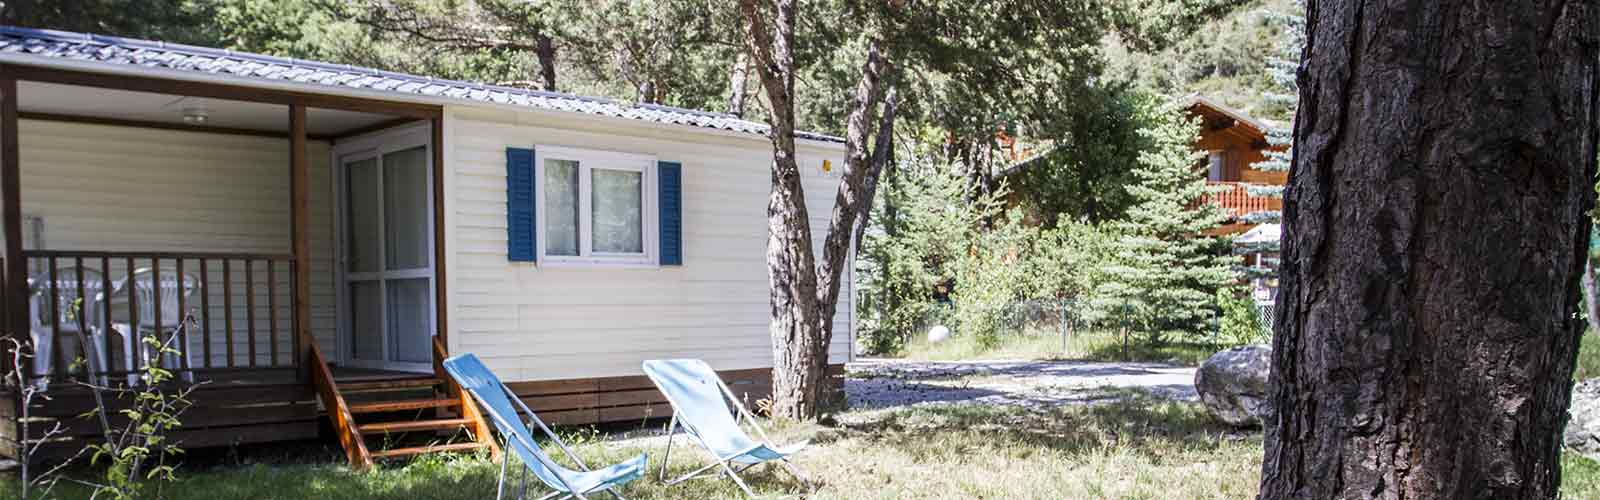 location mobil home Alpes